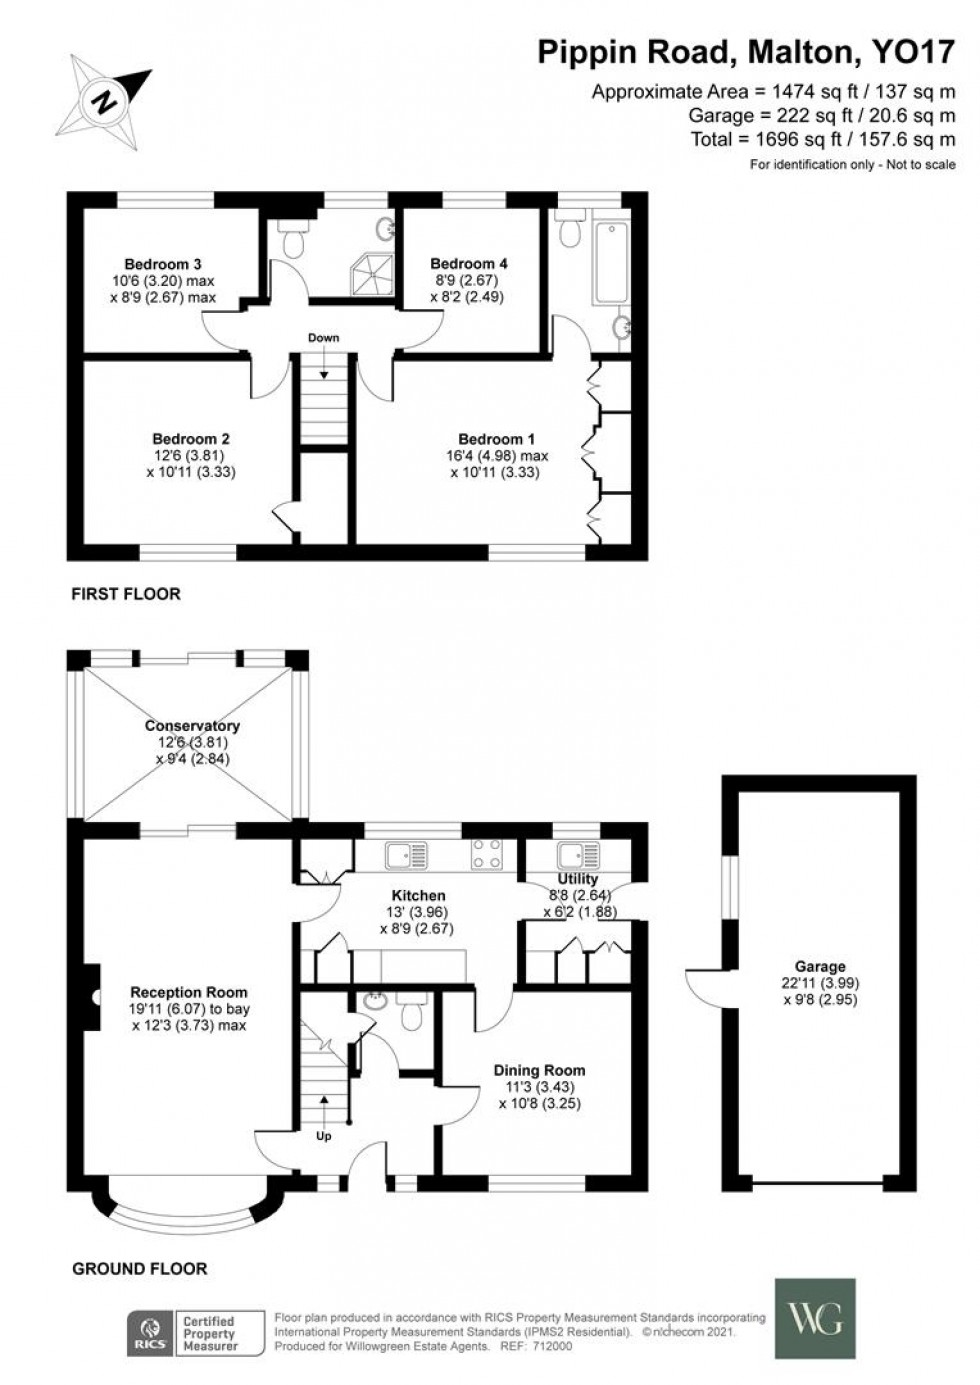 Floorplan for 10, Pippin Road, Malton, North Yorkshire, YO17 7YT